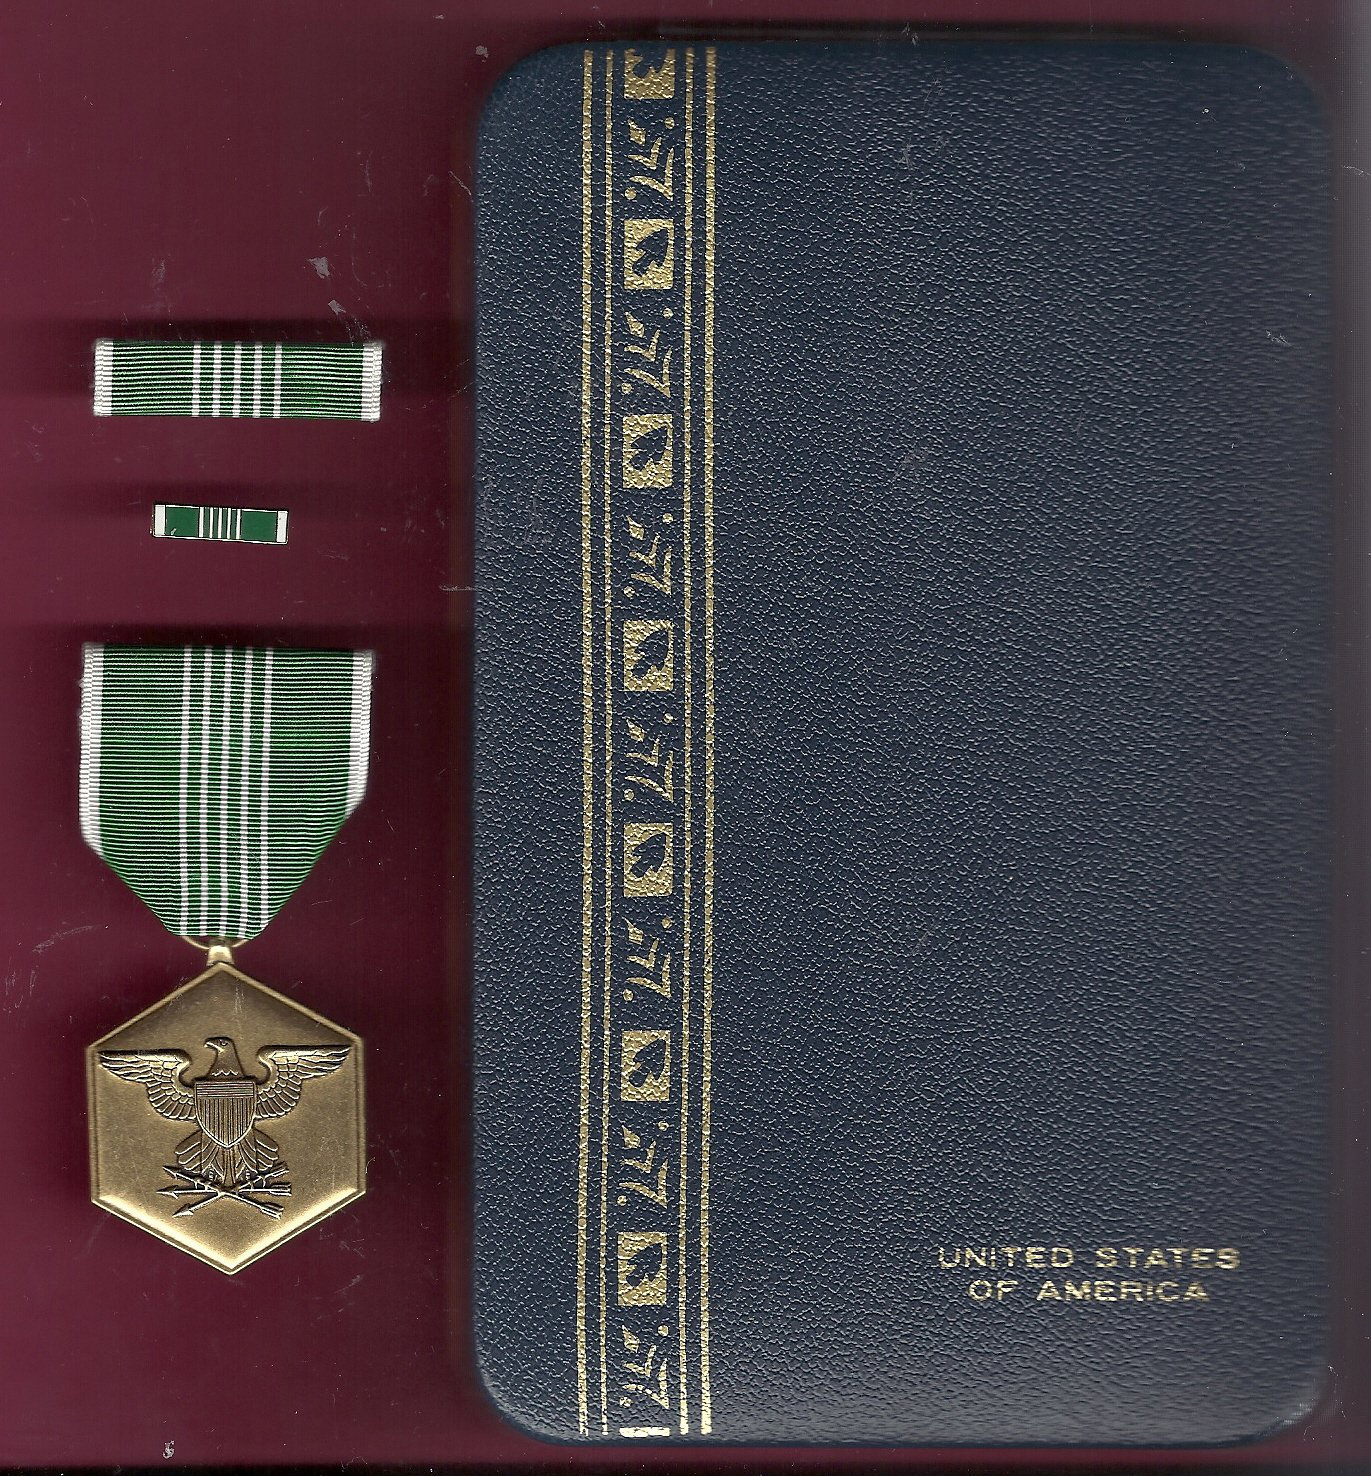 US Army Commendation Award medal with ribbon bar and lapel pin in case